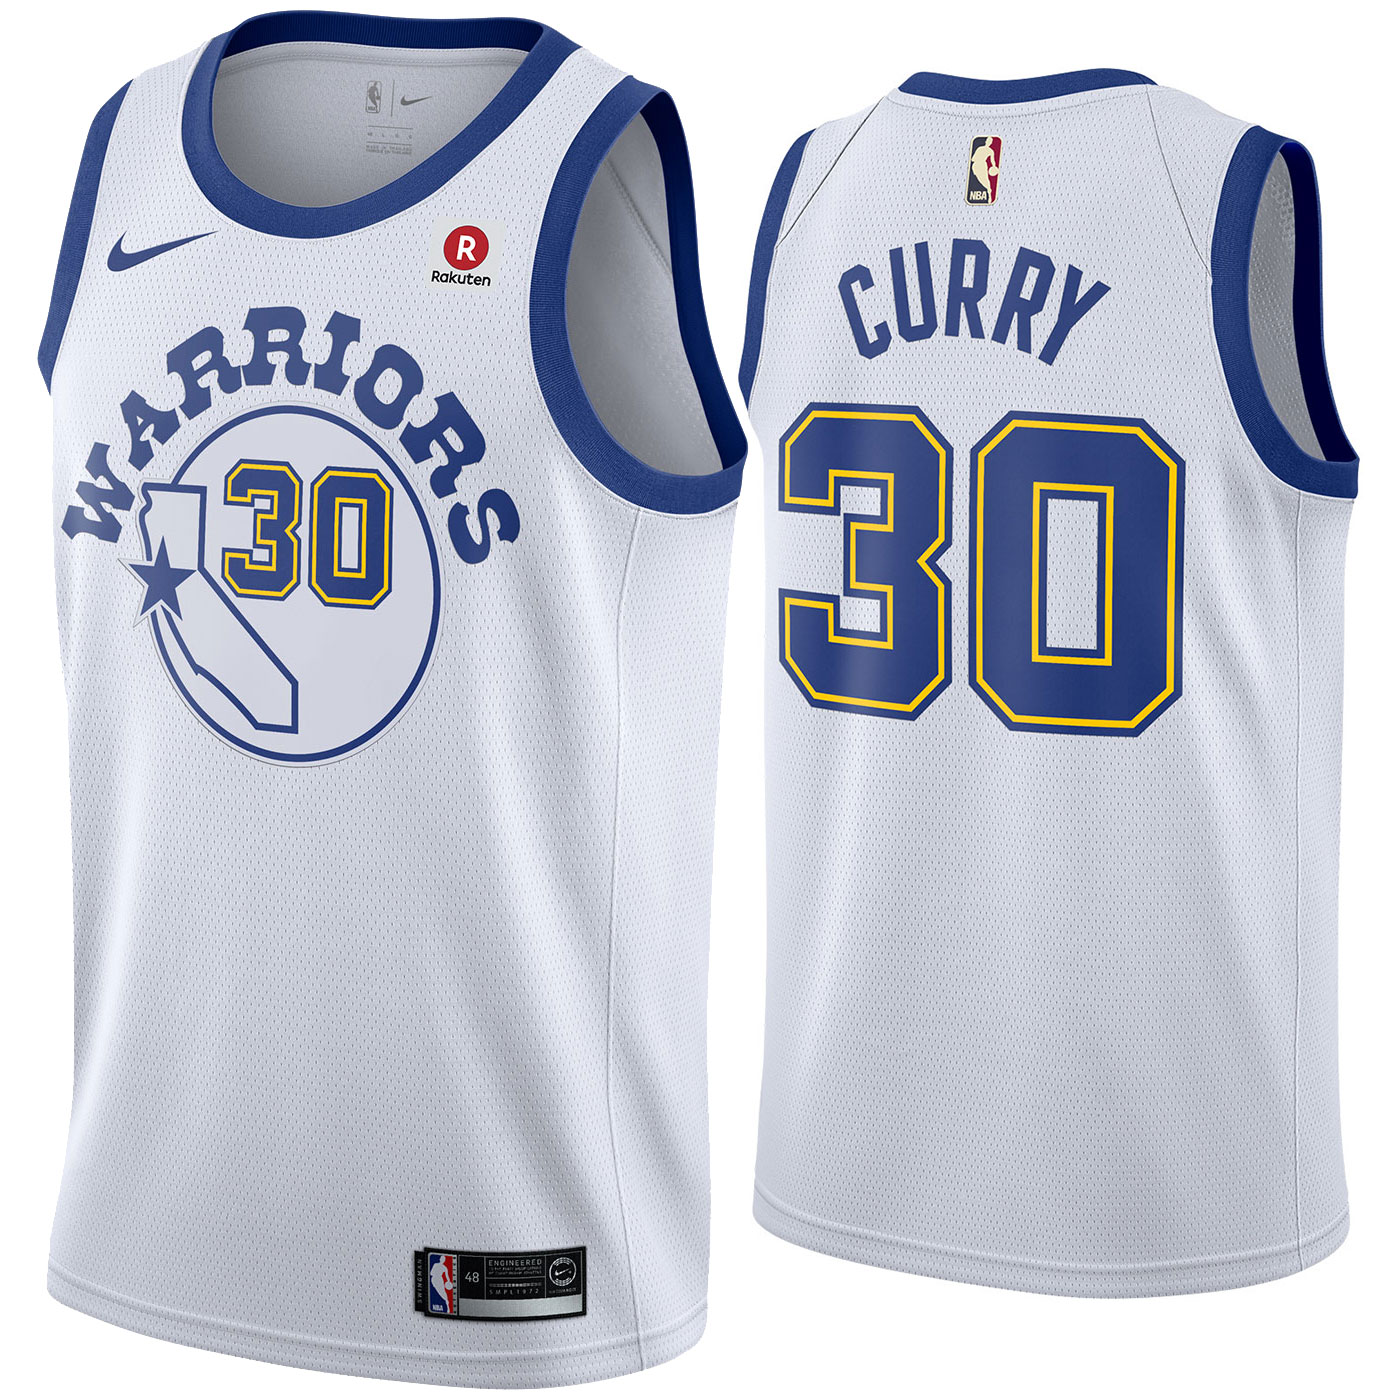 Warriors to Debut Classic Edition Uniforms Tonight, Swingman Jerseys Available to Order Now ...